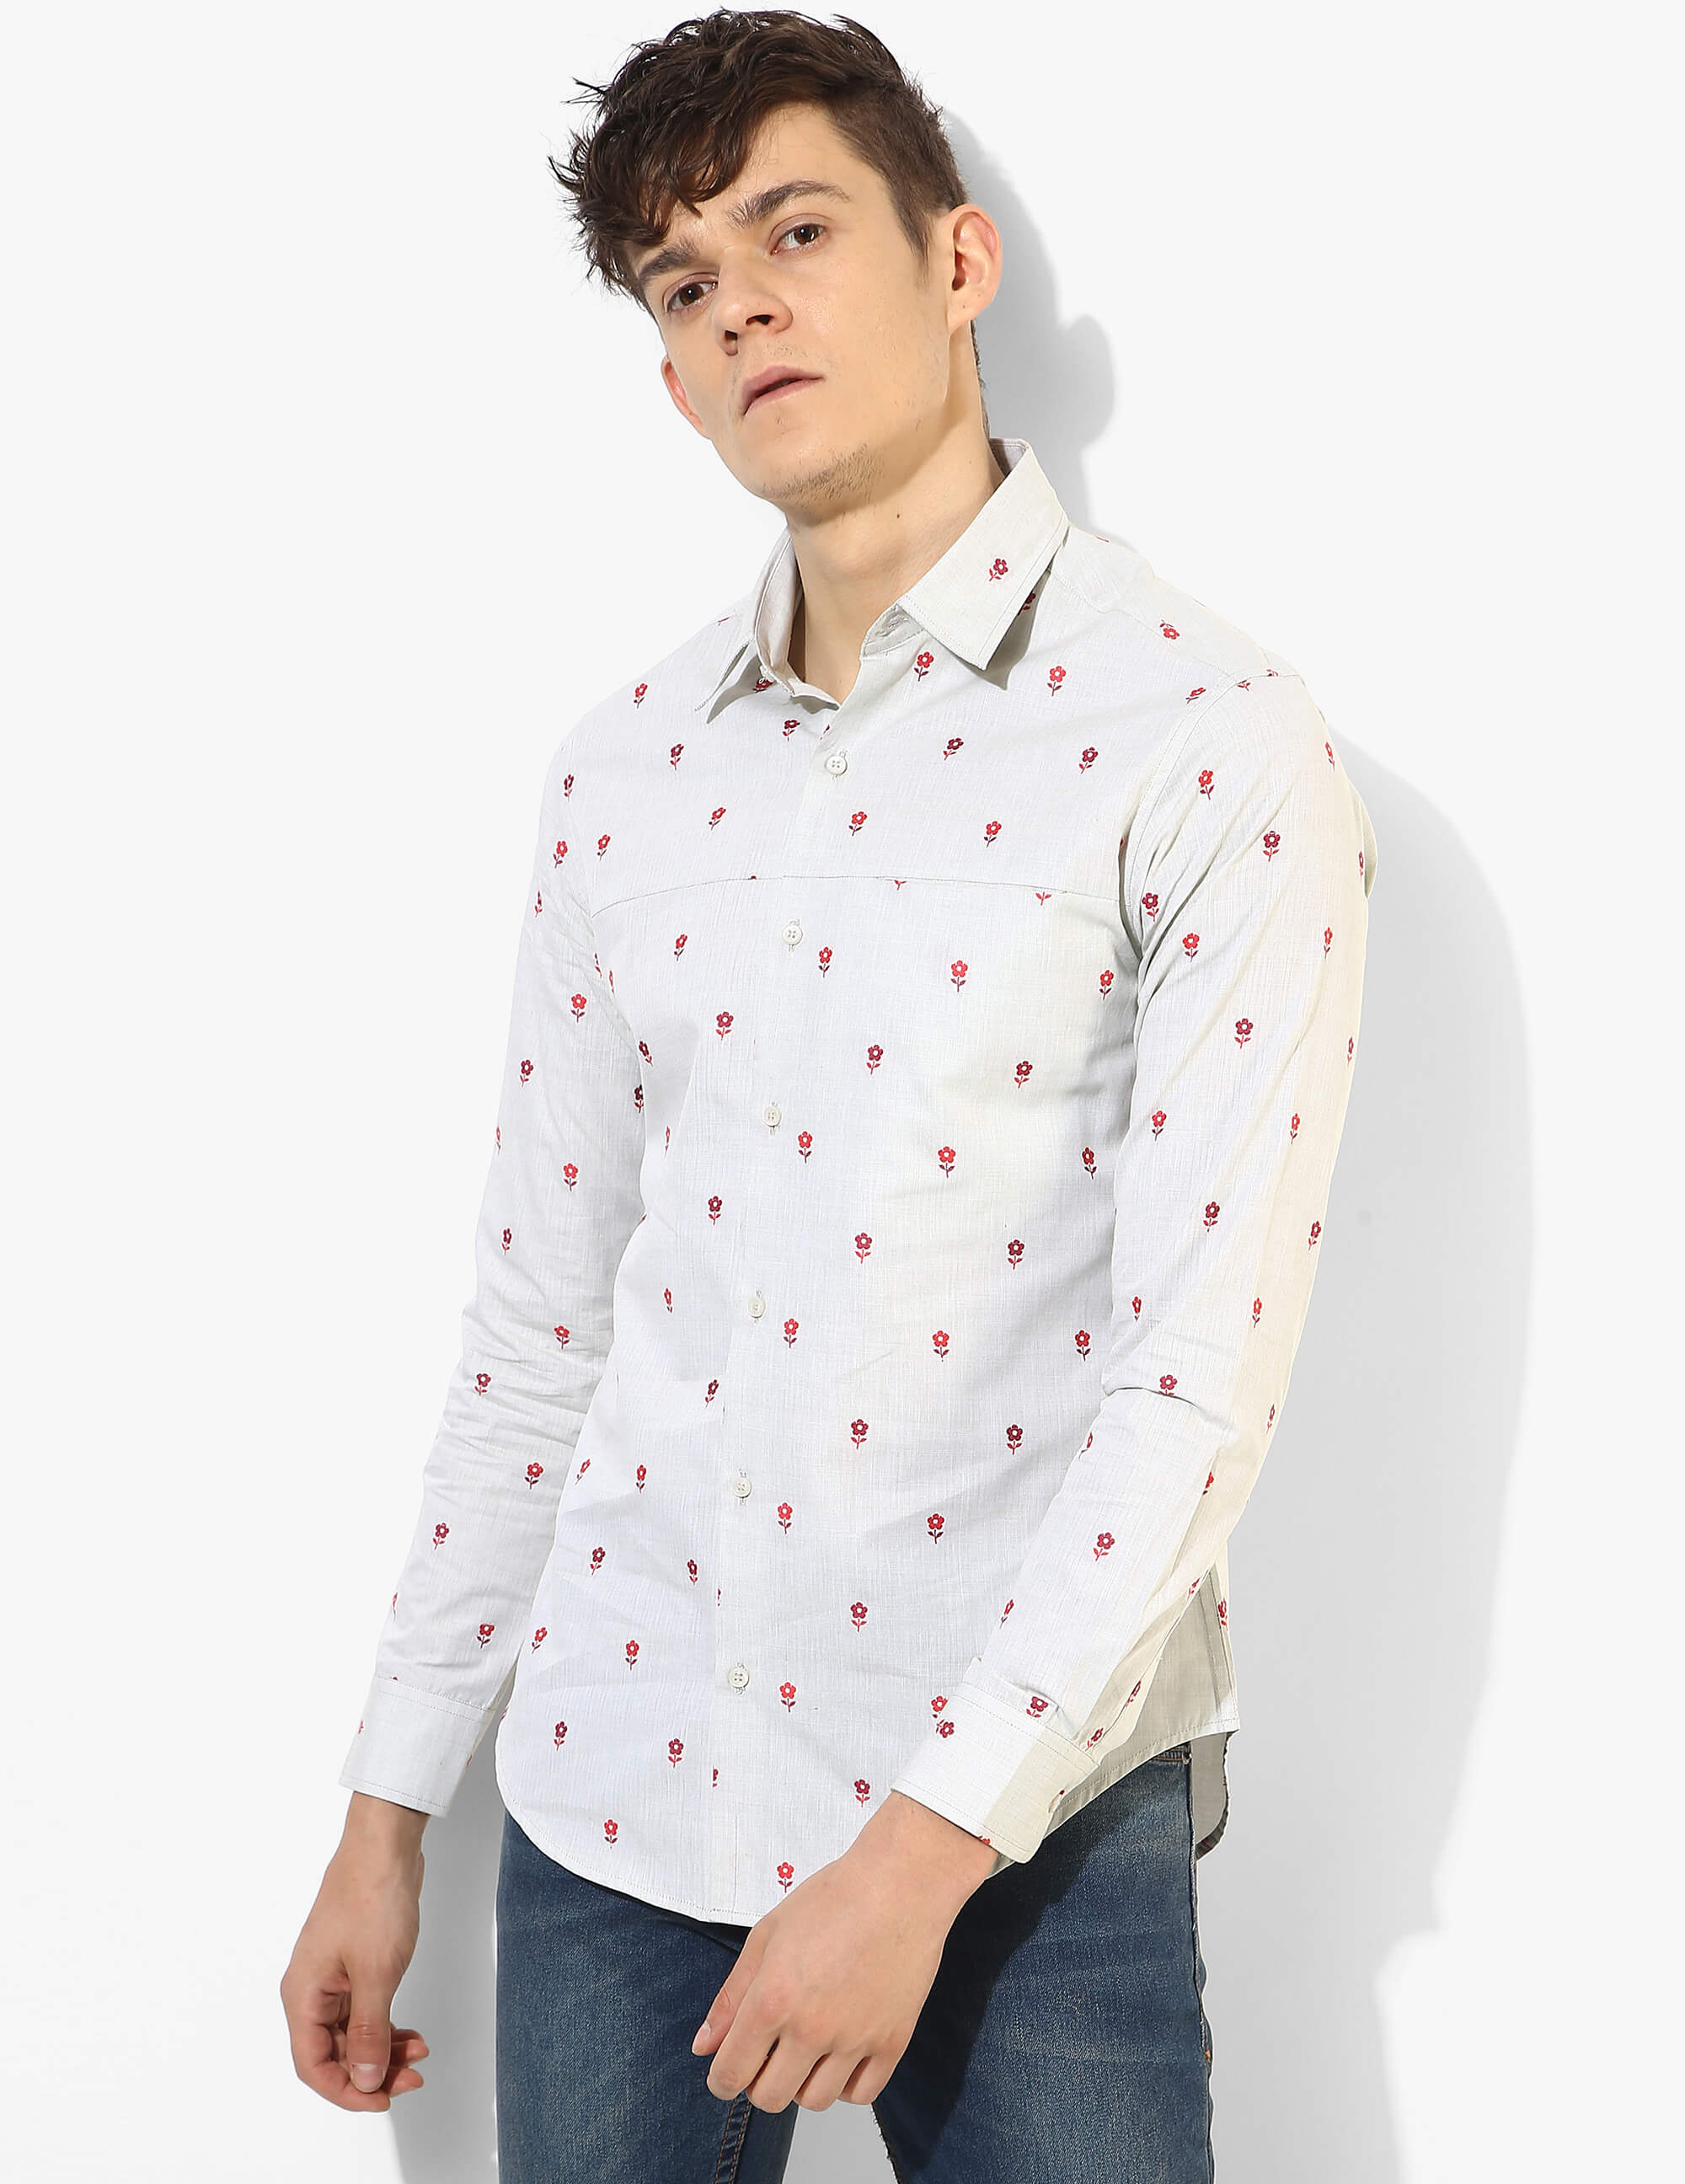 Fila-Fil Floral Embroidered Shirt - Tuck N Stitch